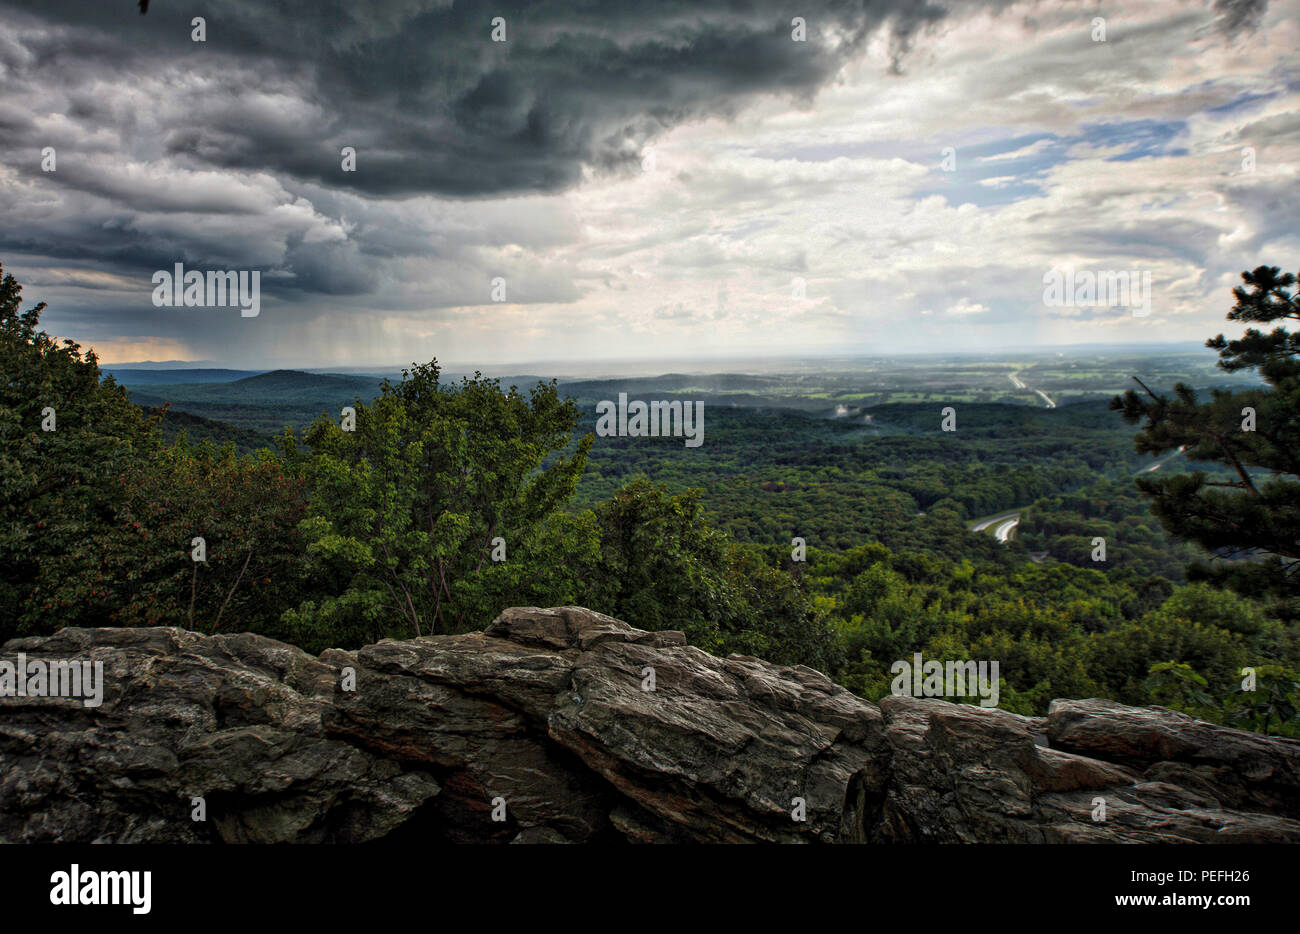 UNITED STATES - August 14, 2018: Storm clouds roll in during the afternoon heat at Bears Den in the blue ridge mountains along the Appalachian Trail i - Stock Image